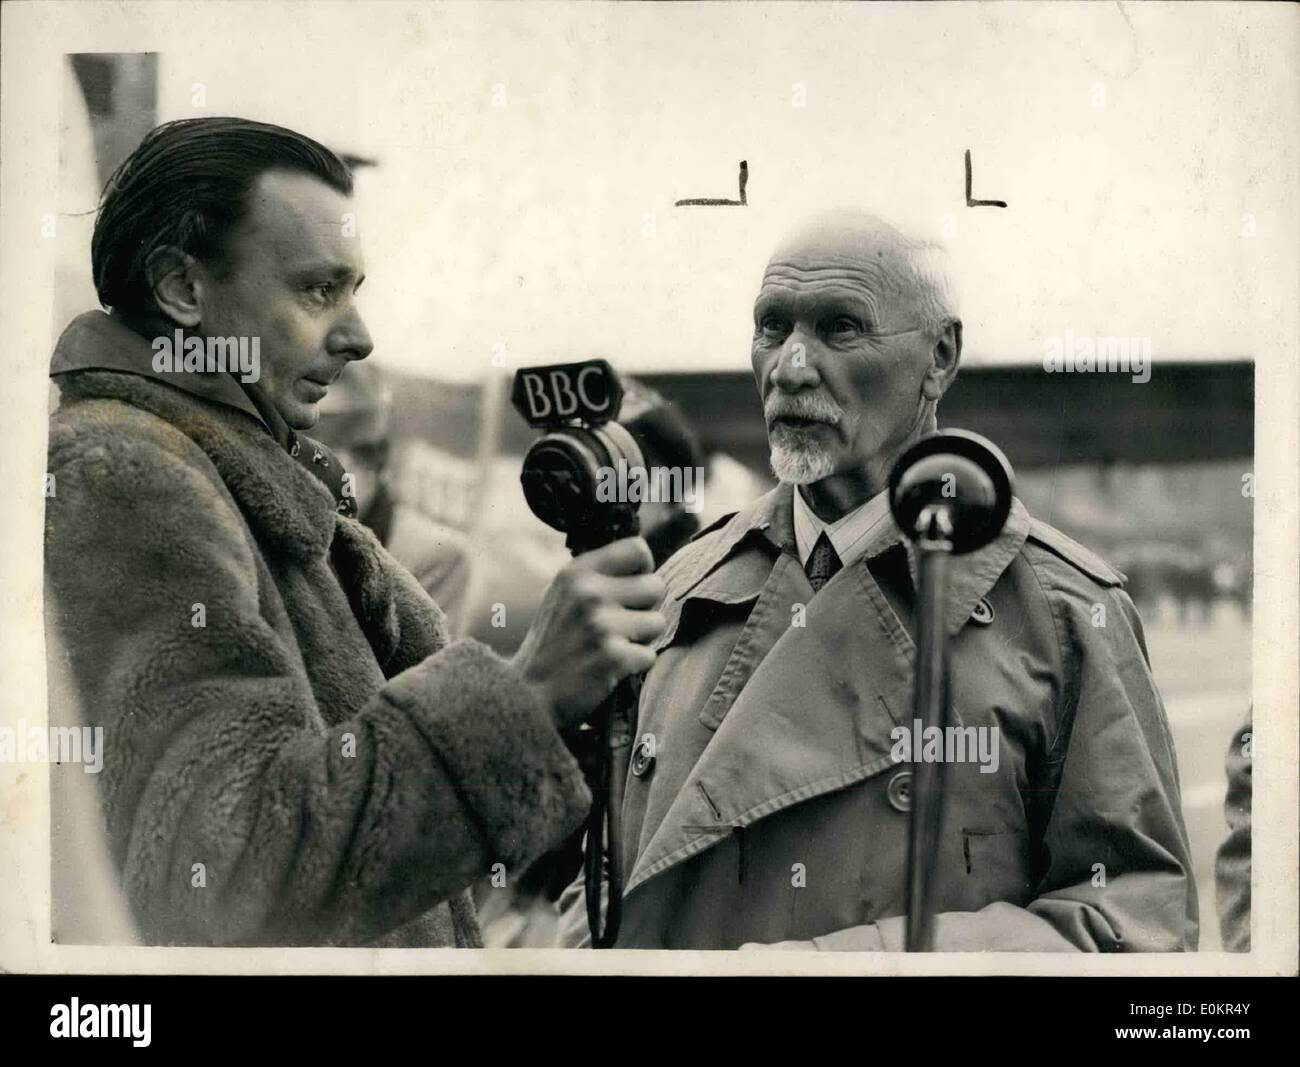 Apr. 04, 1946 - General Smuts Arrives For The  Prime Ministers Conference In London: General Smuts, South African Prime Minister arrived at Northolt aerodrome this morning. Phot Shows Closes up od General Smuts speaking into a  on his arrival at Northolt aerodrome this morning. - Stock Image